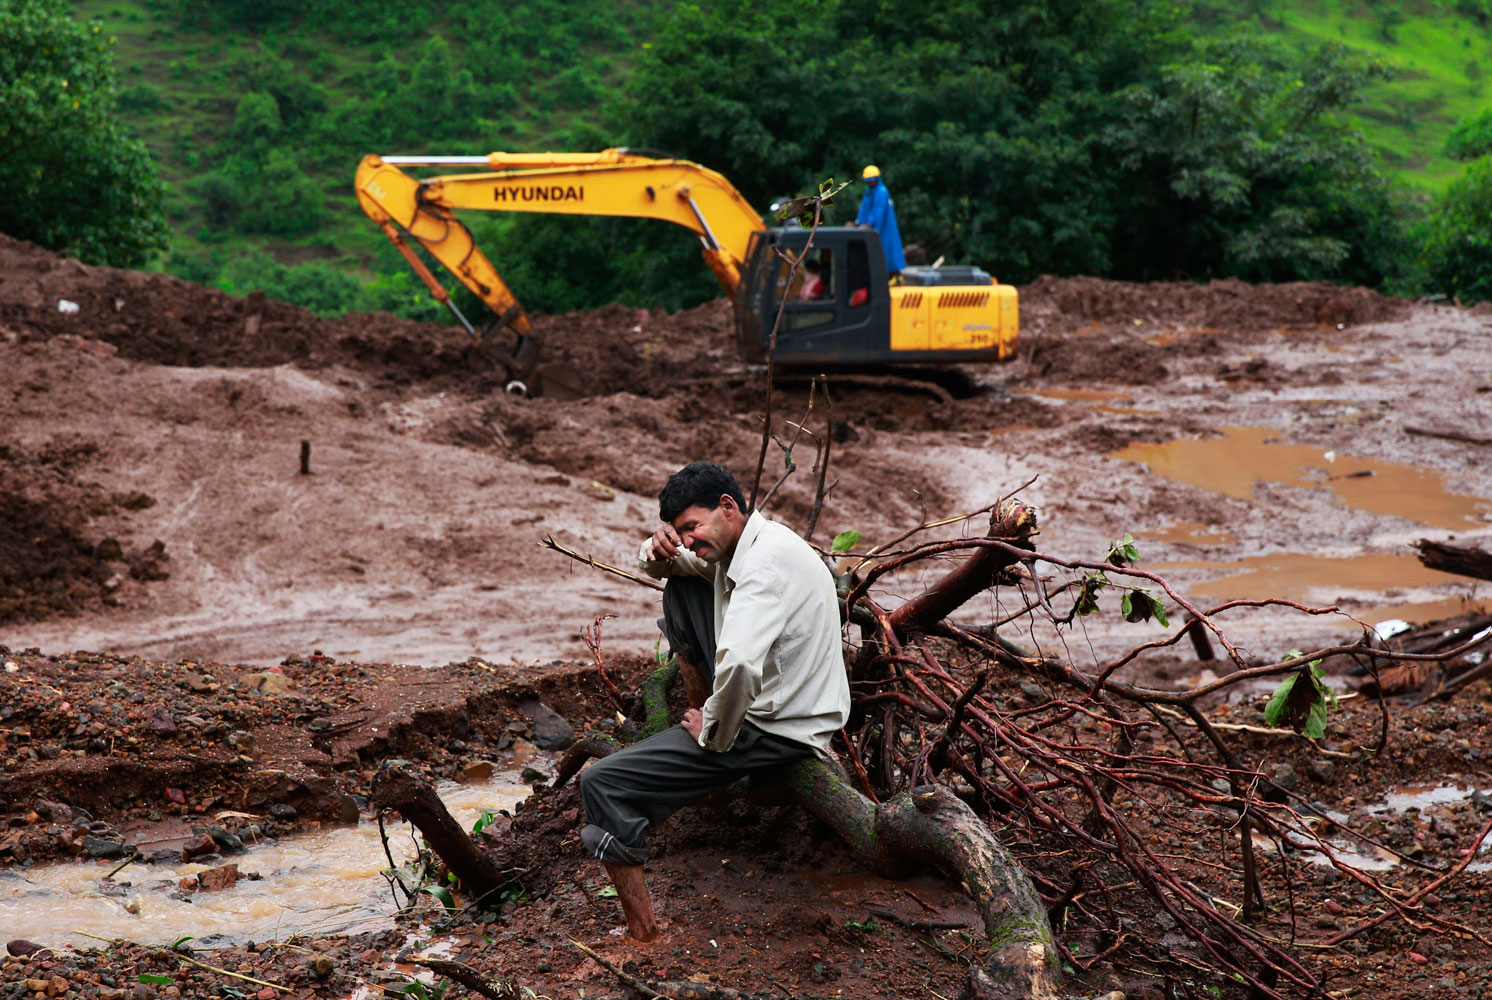 Chandrakant Zanjare, who said he lost 13 family members to a landslide, wails near the site where his house stood in Malin village, in the western Indian state of Maharashtra on Aug. 1, 2014.